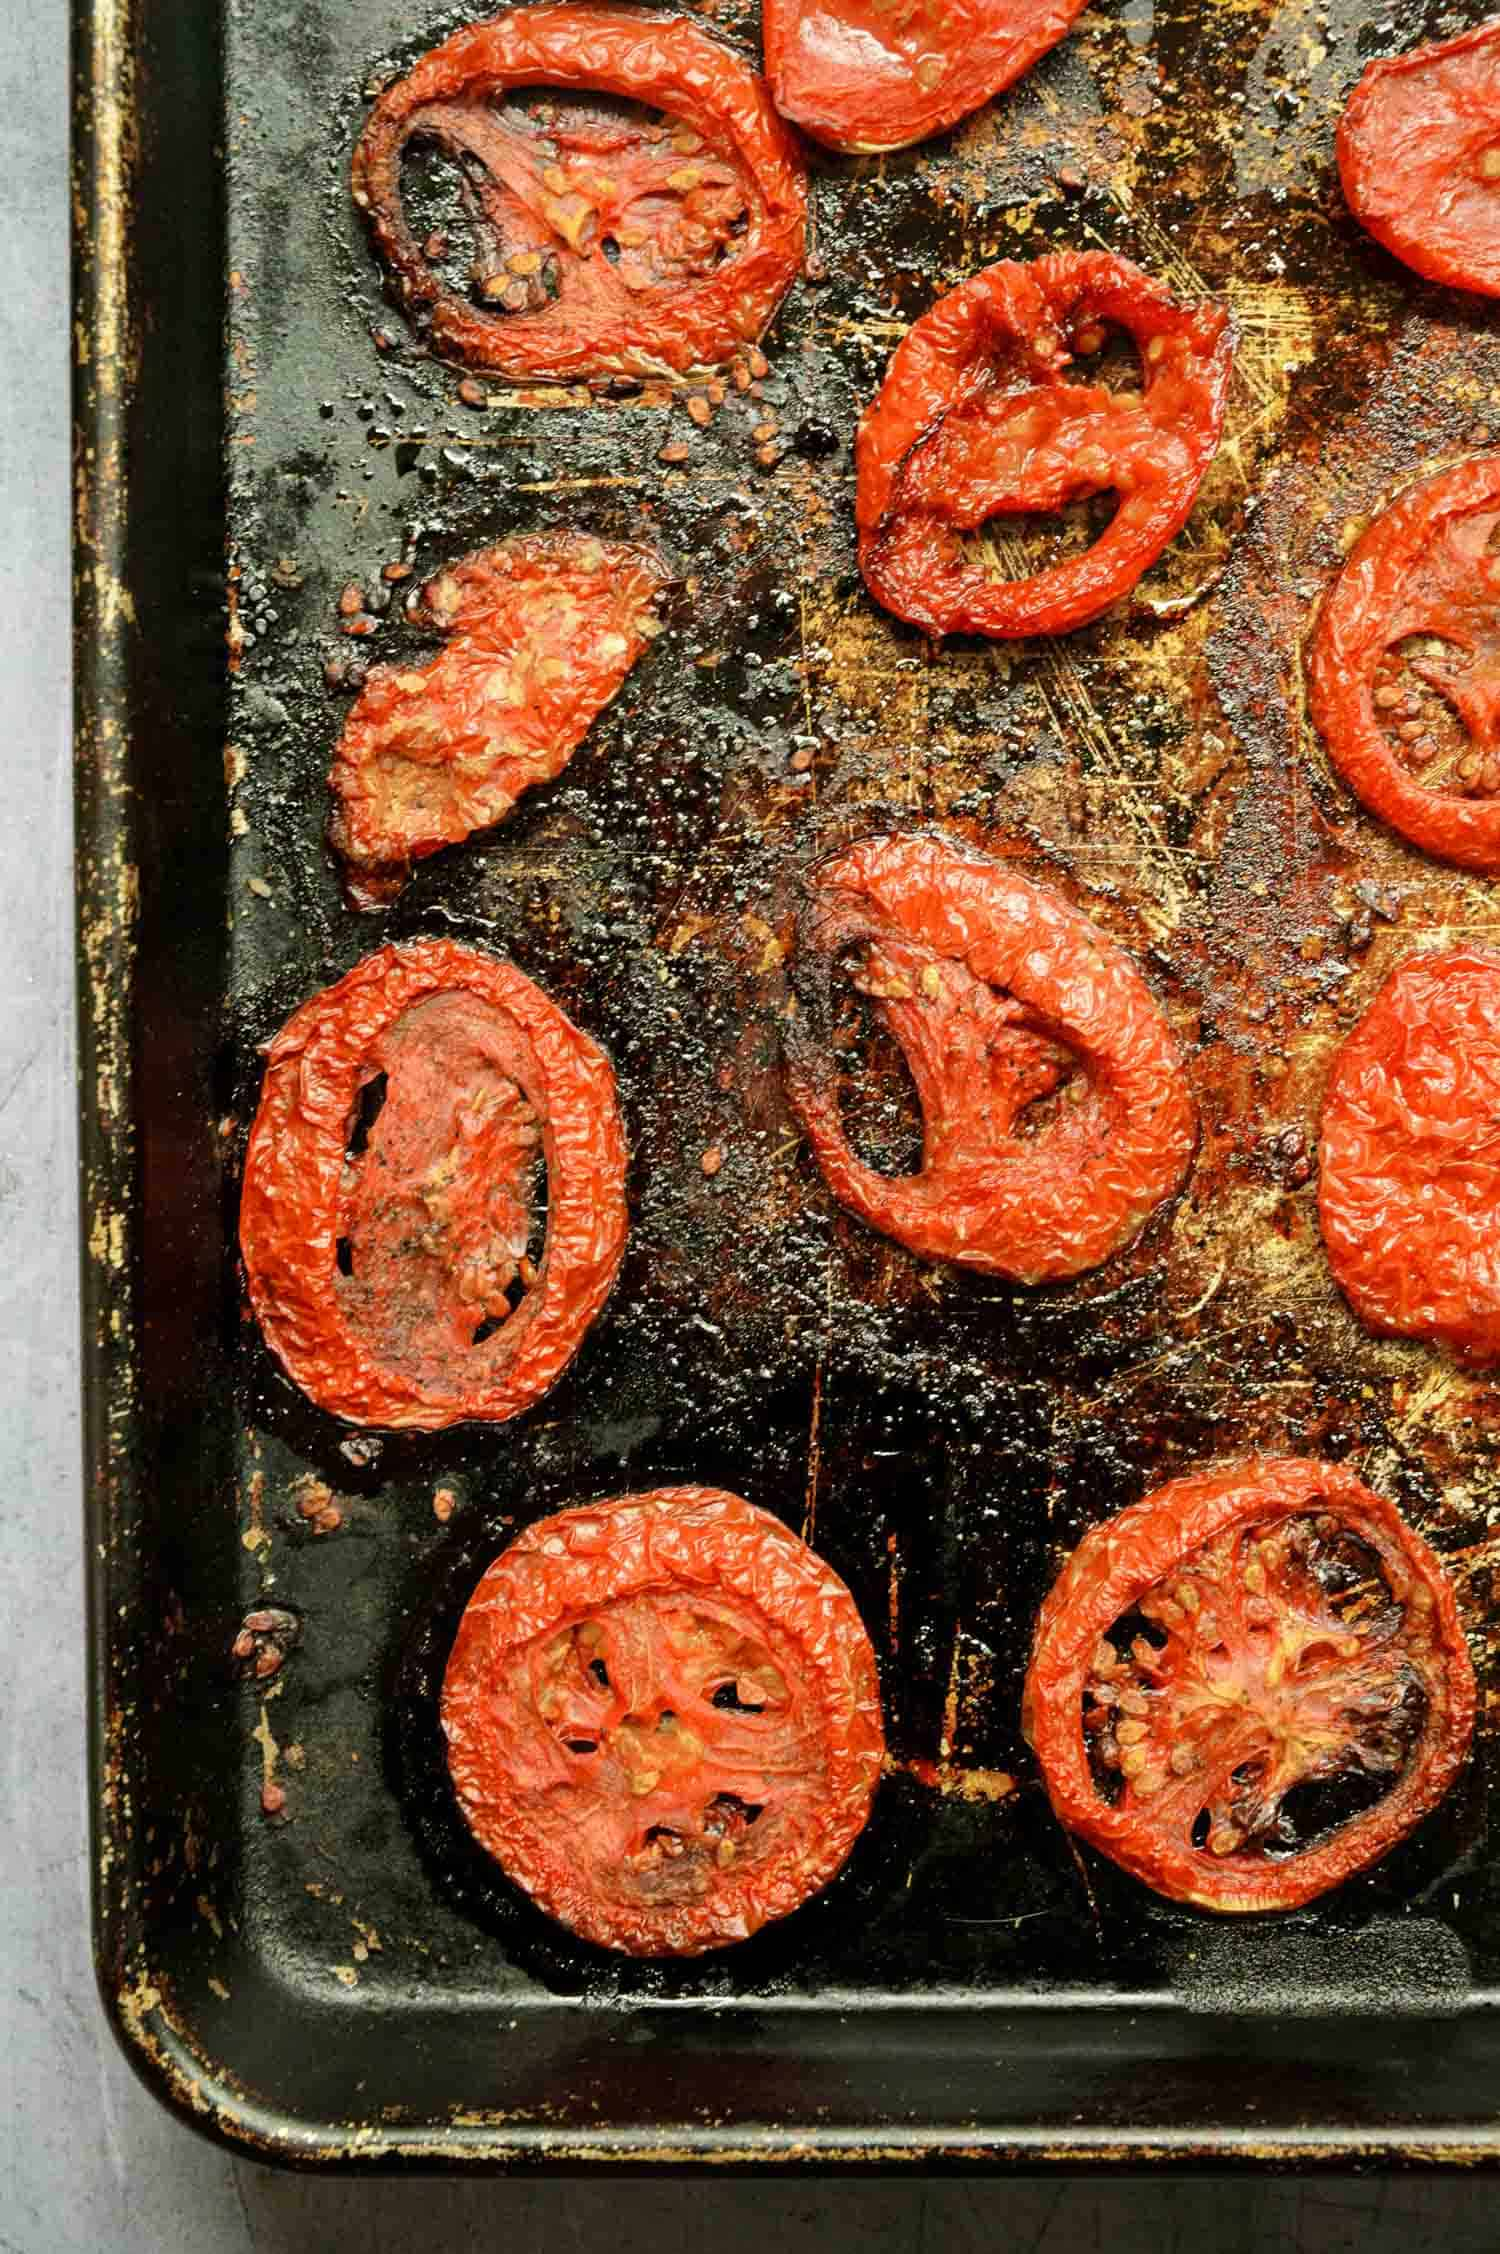 sliced and roasted tomatoes on a darkened sheet pan